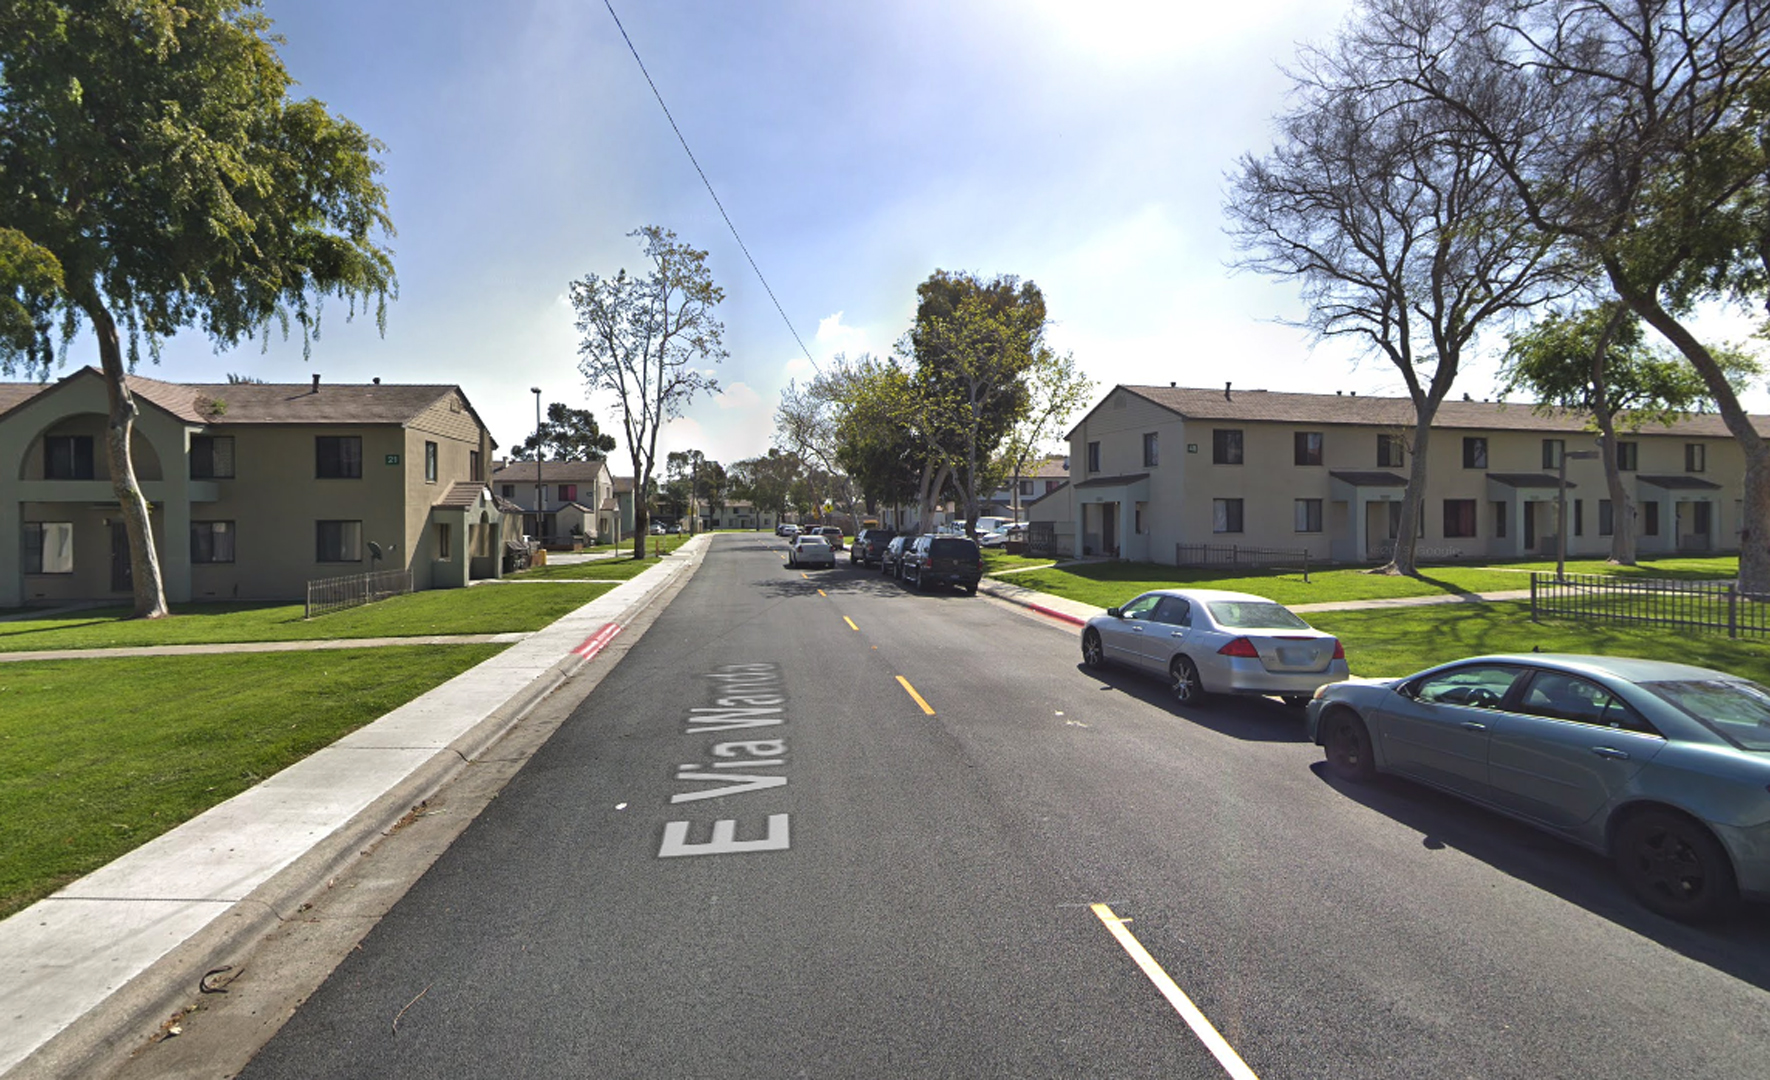 The 900 block of East Via Wanda in Long Beach, as viewed in a Google Street View image.